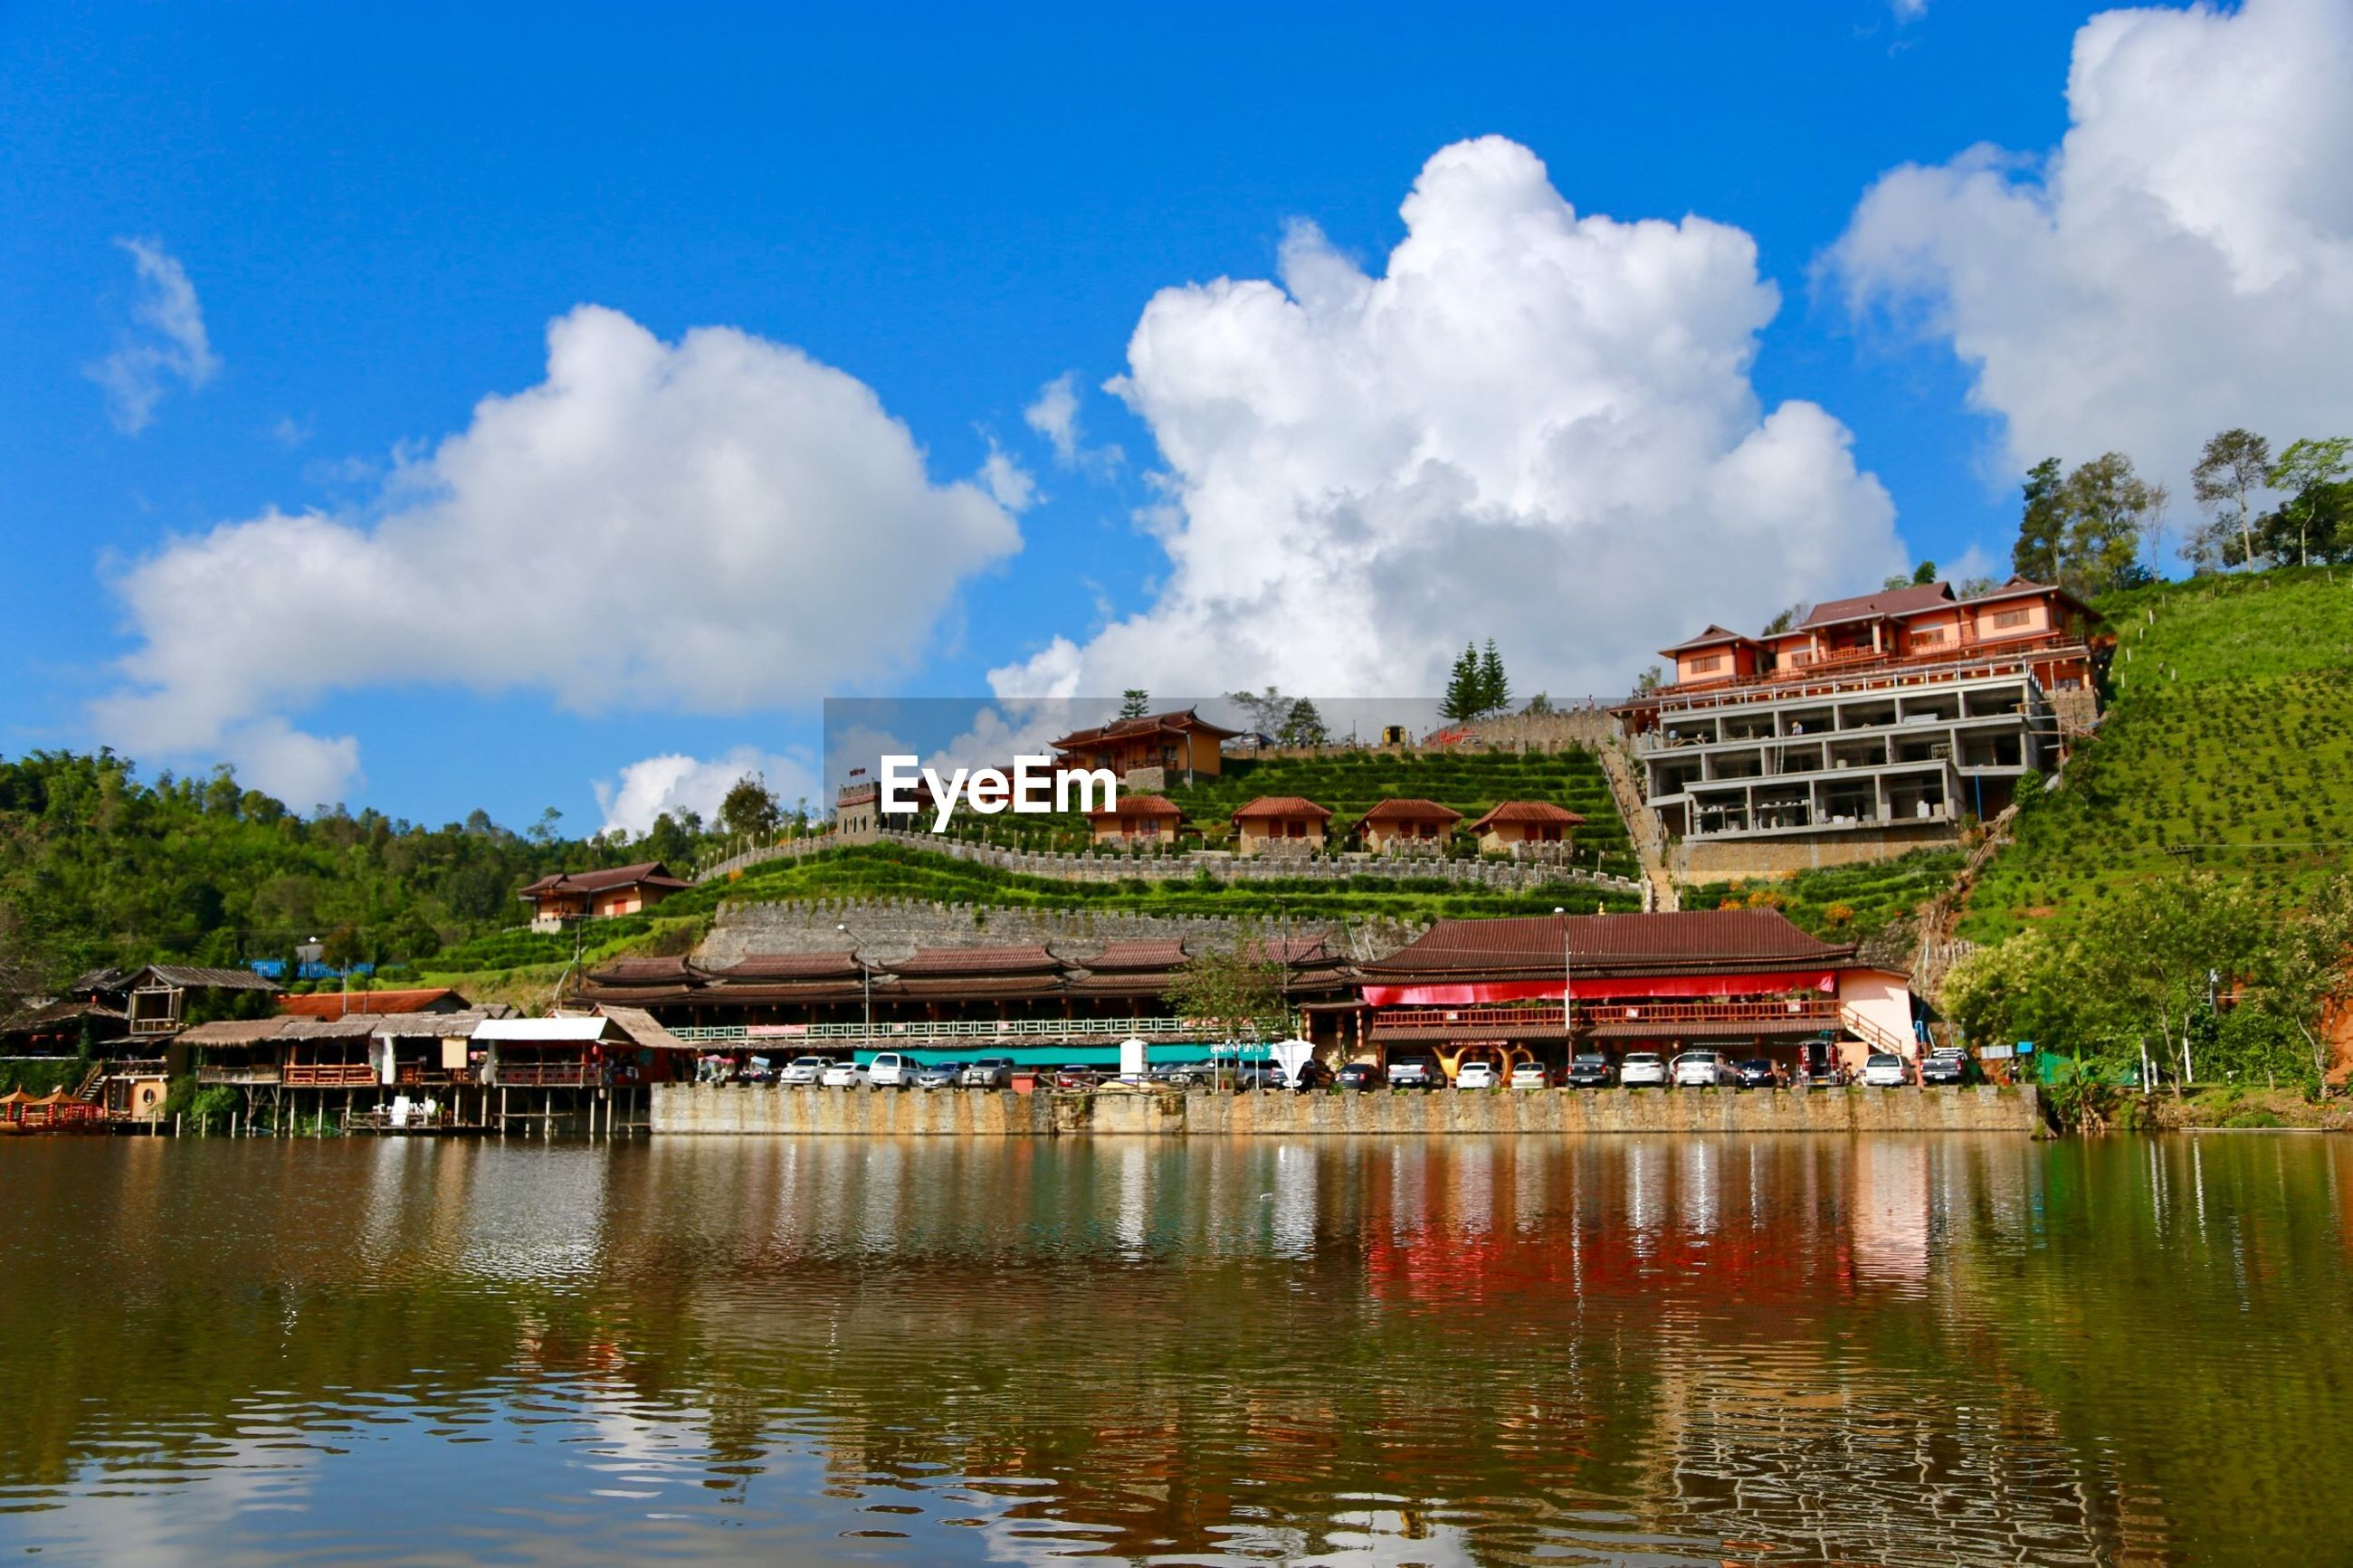 Panoramic view of buildings by river against cloudy sky